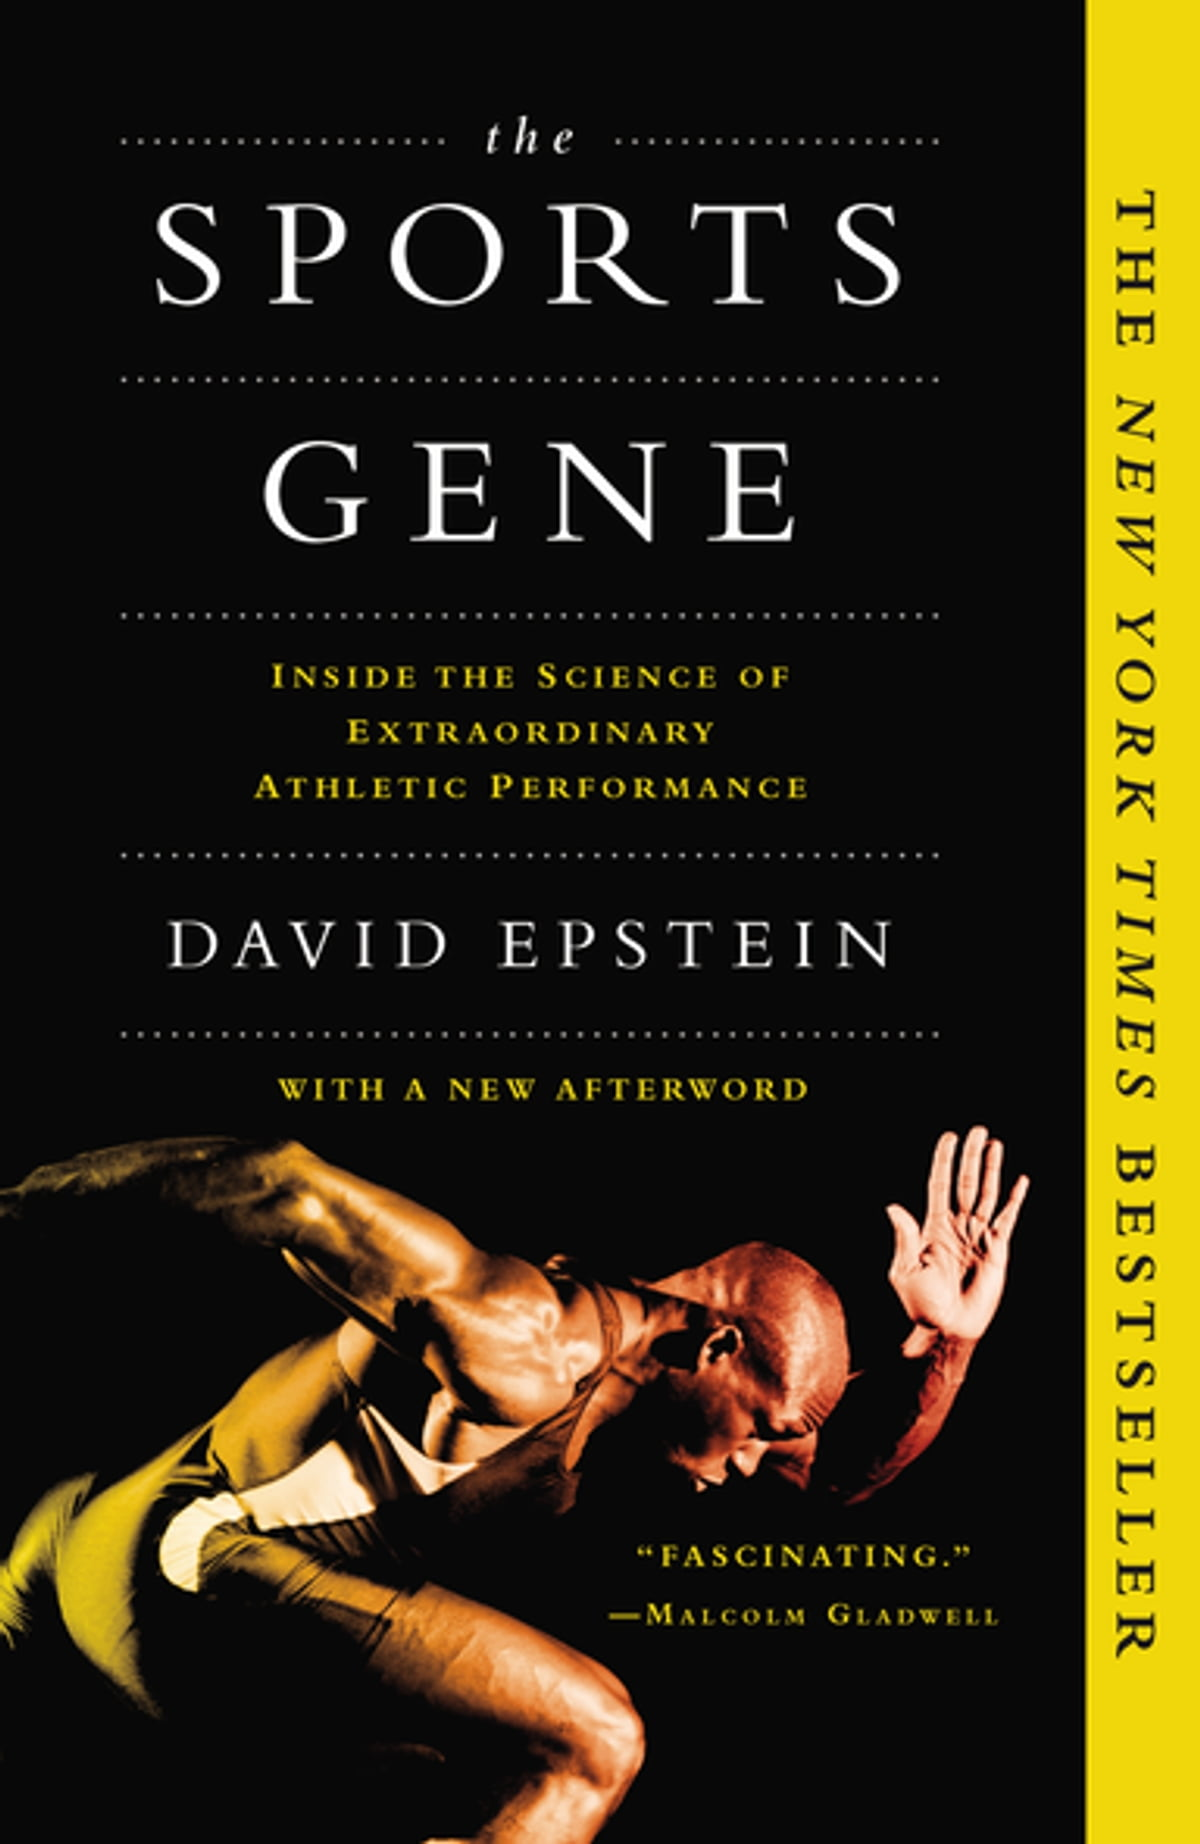 The Sports Gene  Inside The Science Of Extraordinary Athletic Performance  Ebook By David Epstein